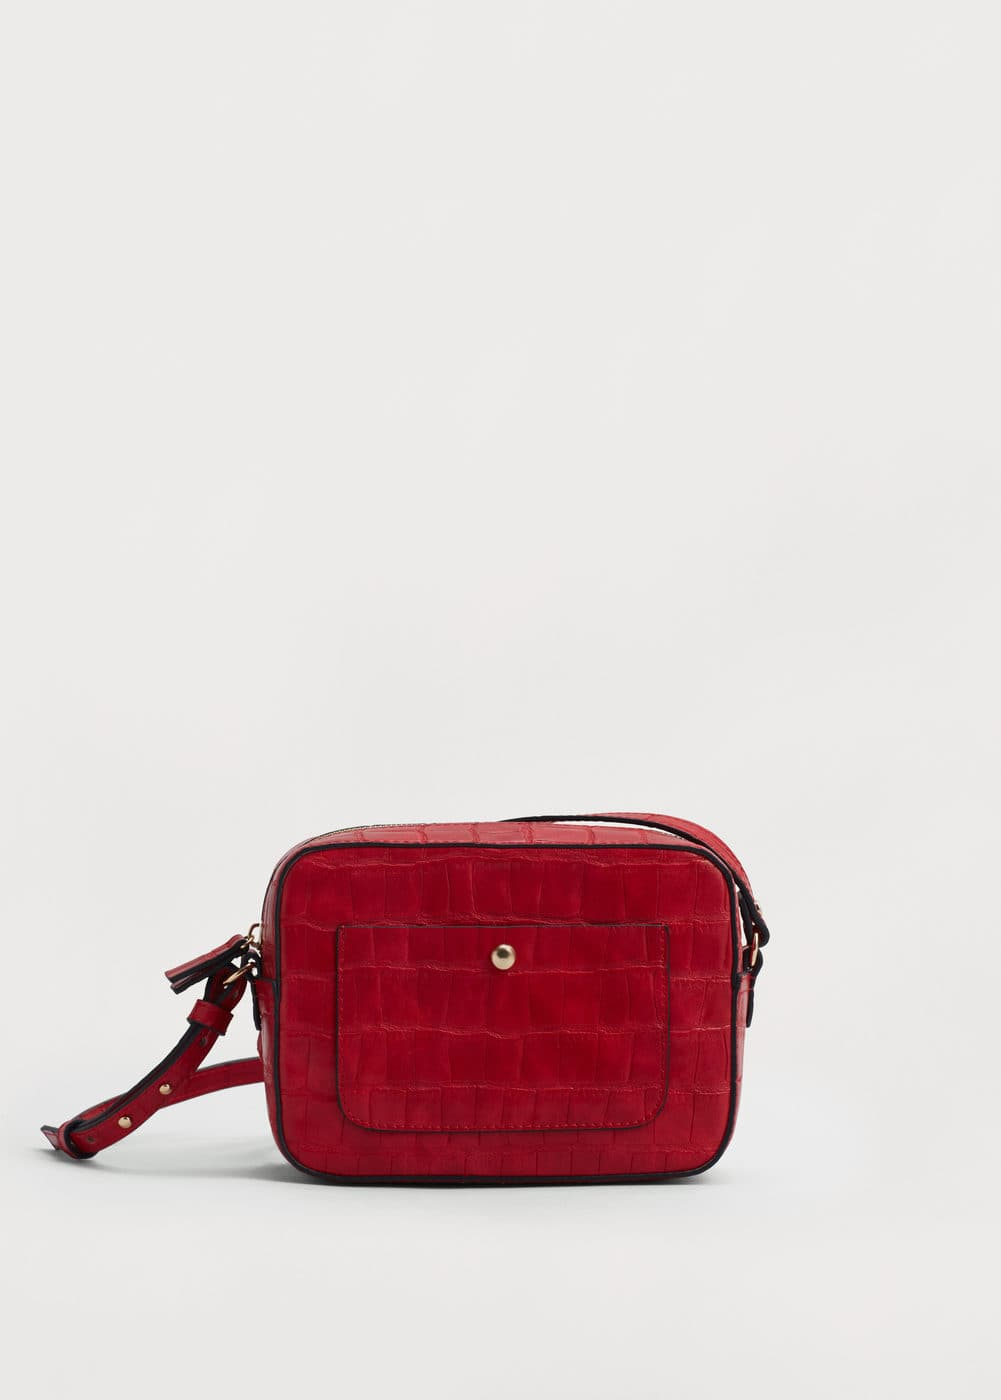 Croc-effect cross body bag | VIOLETA BY MANGO